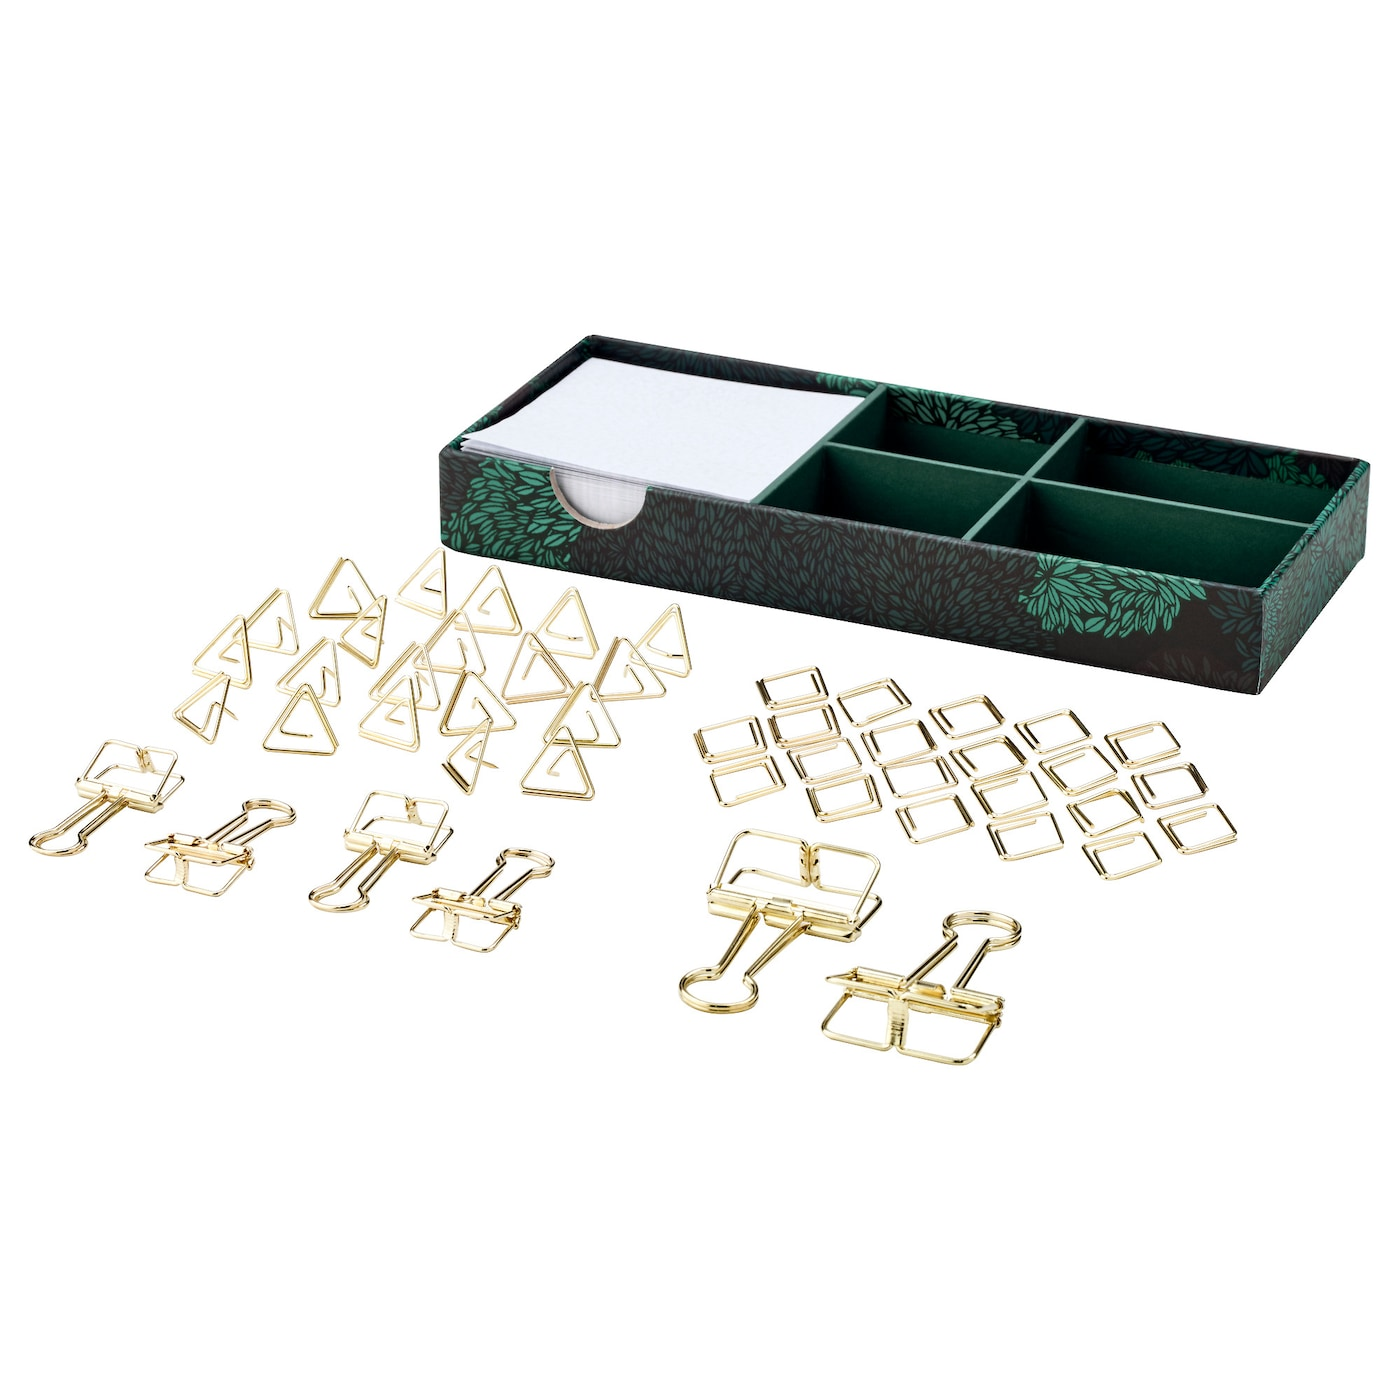 IKEA EKLOG 48-piece stationery set Ideal for storing desk accessories.